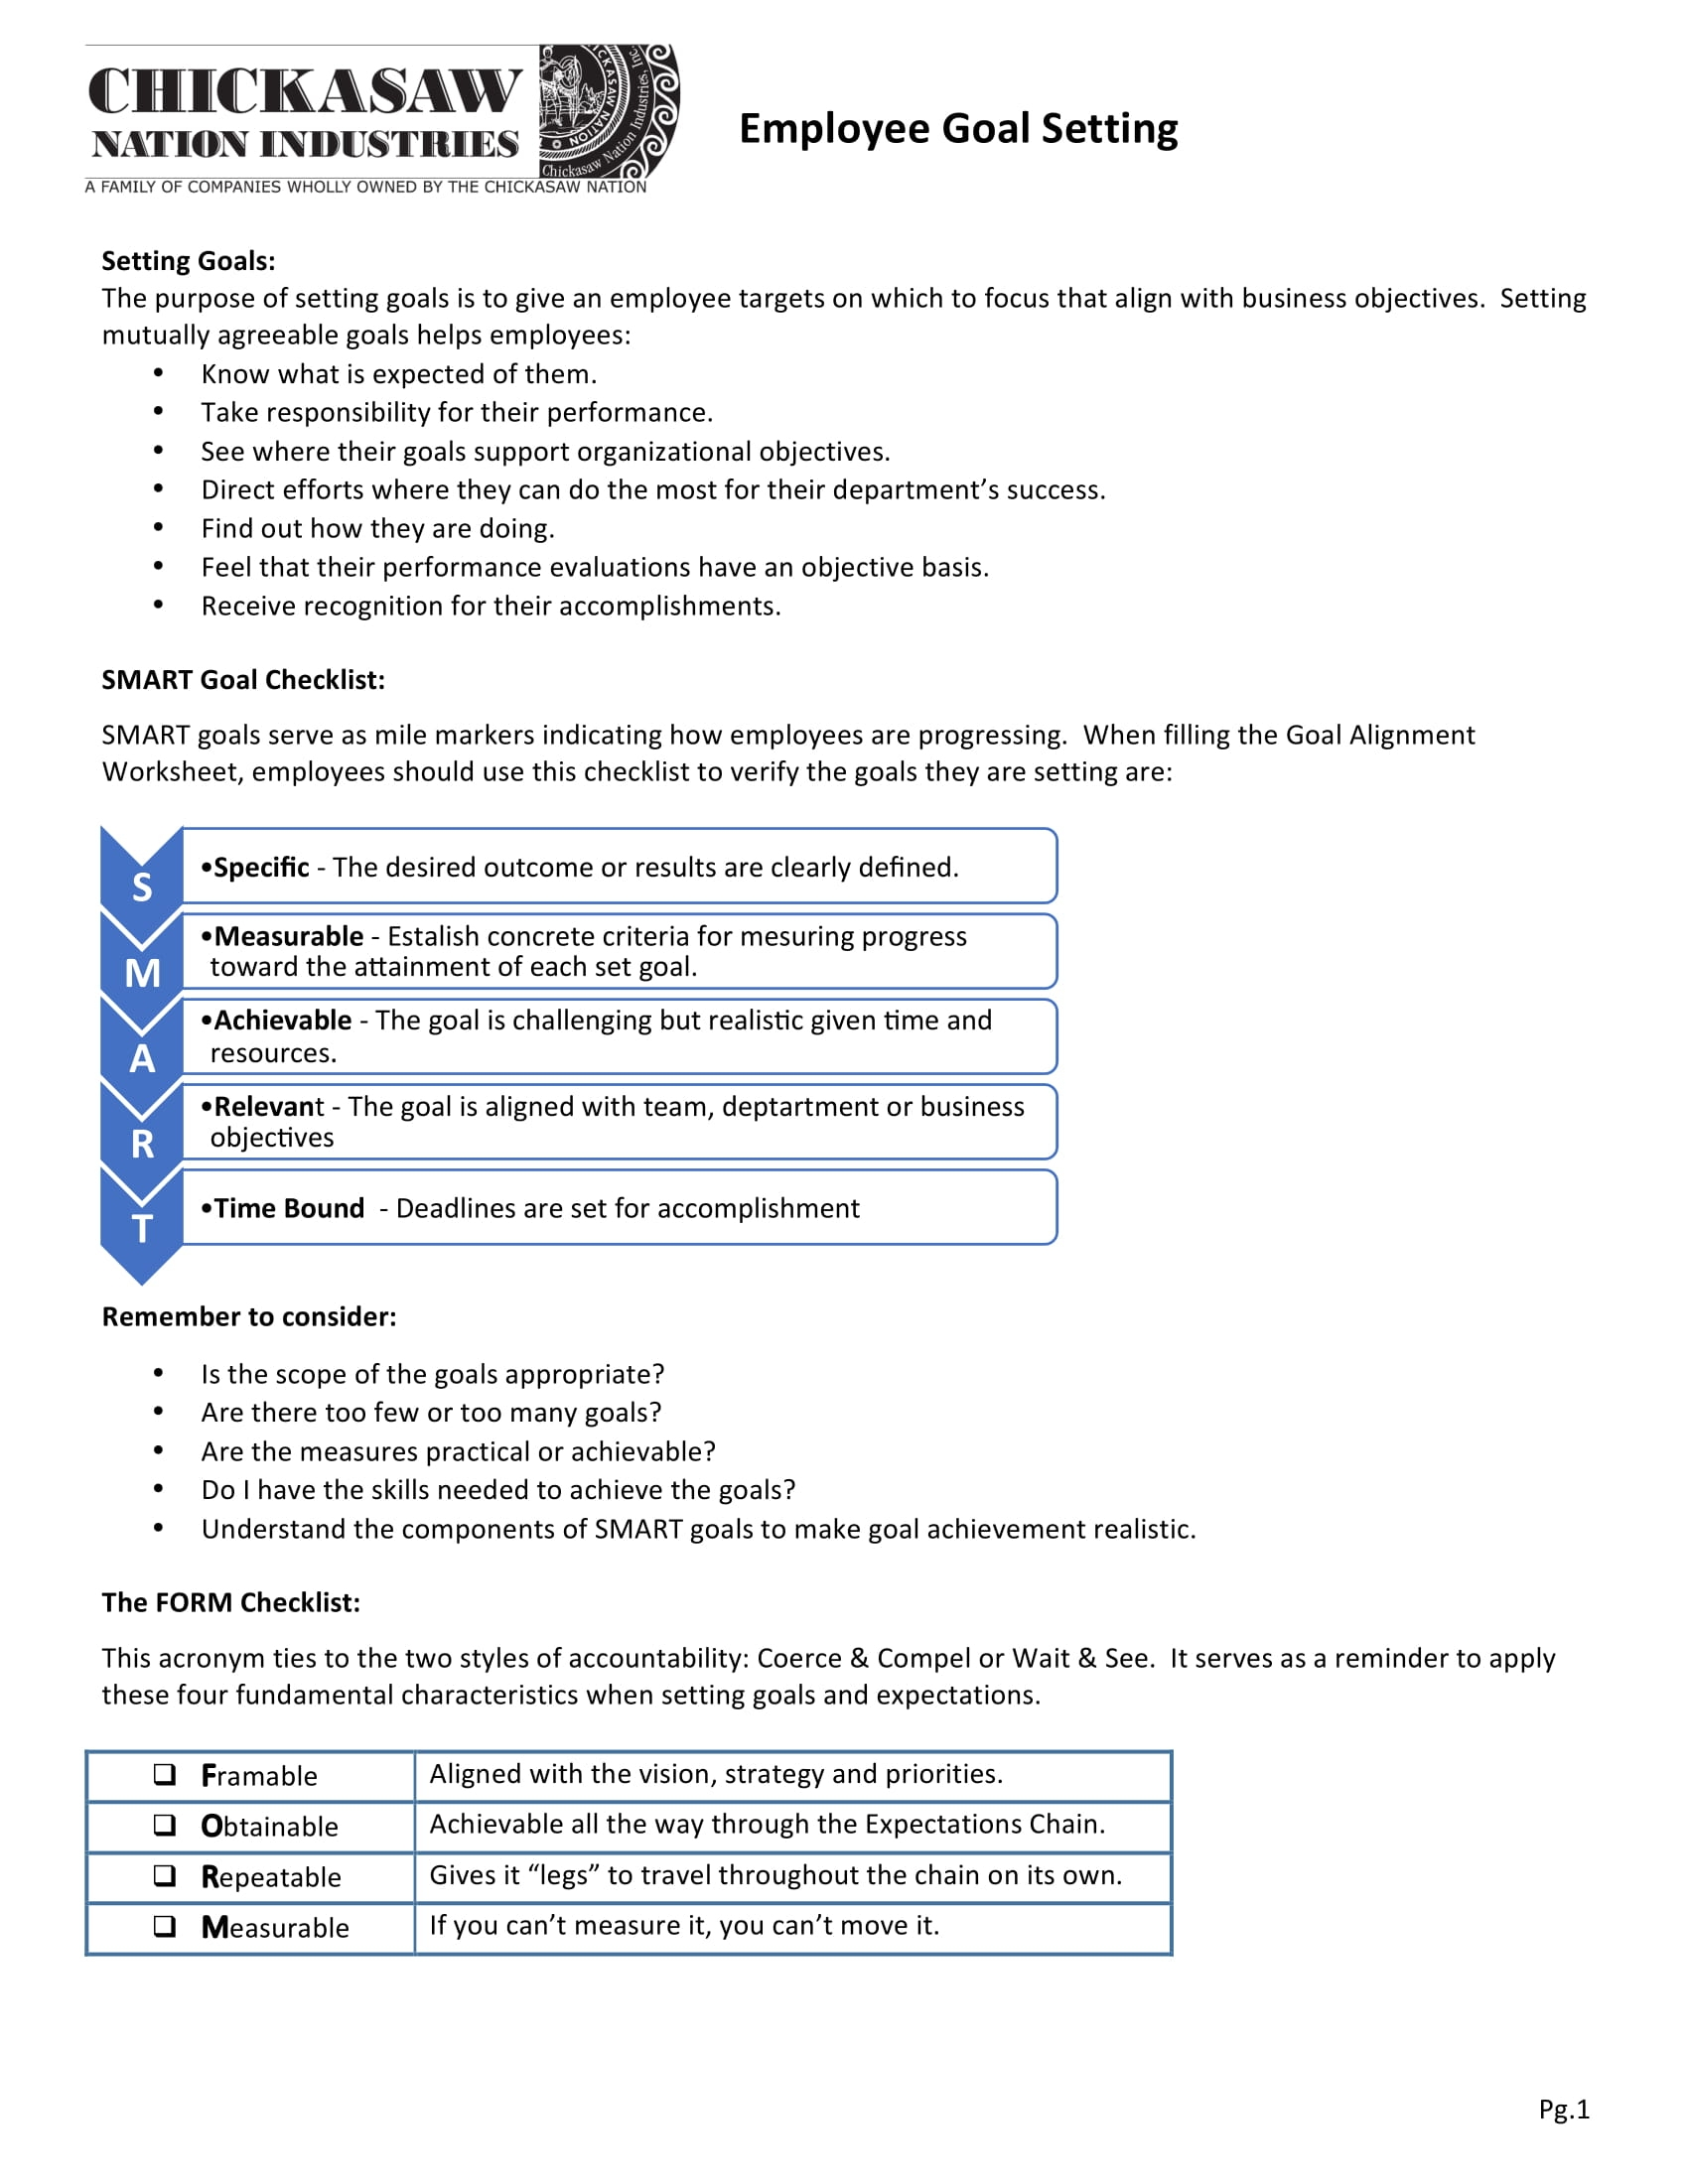 Employee Expectations Template Samples